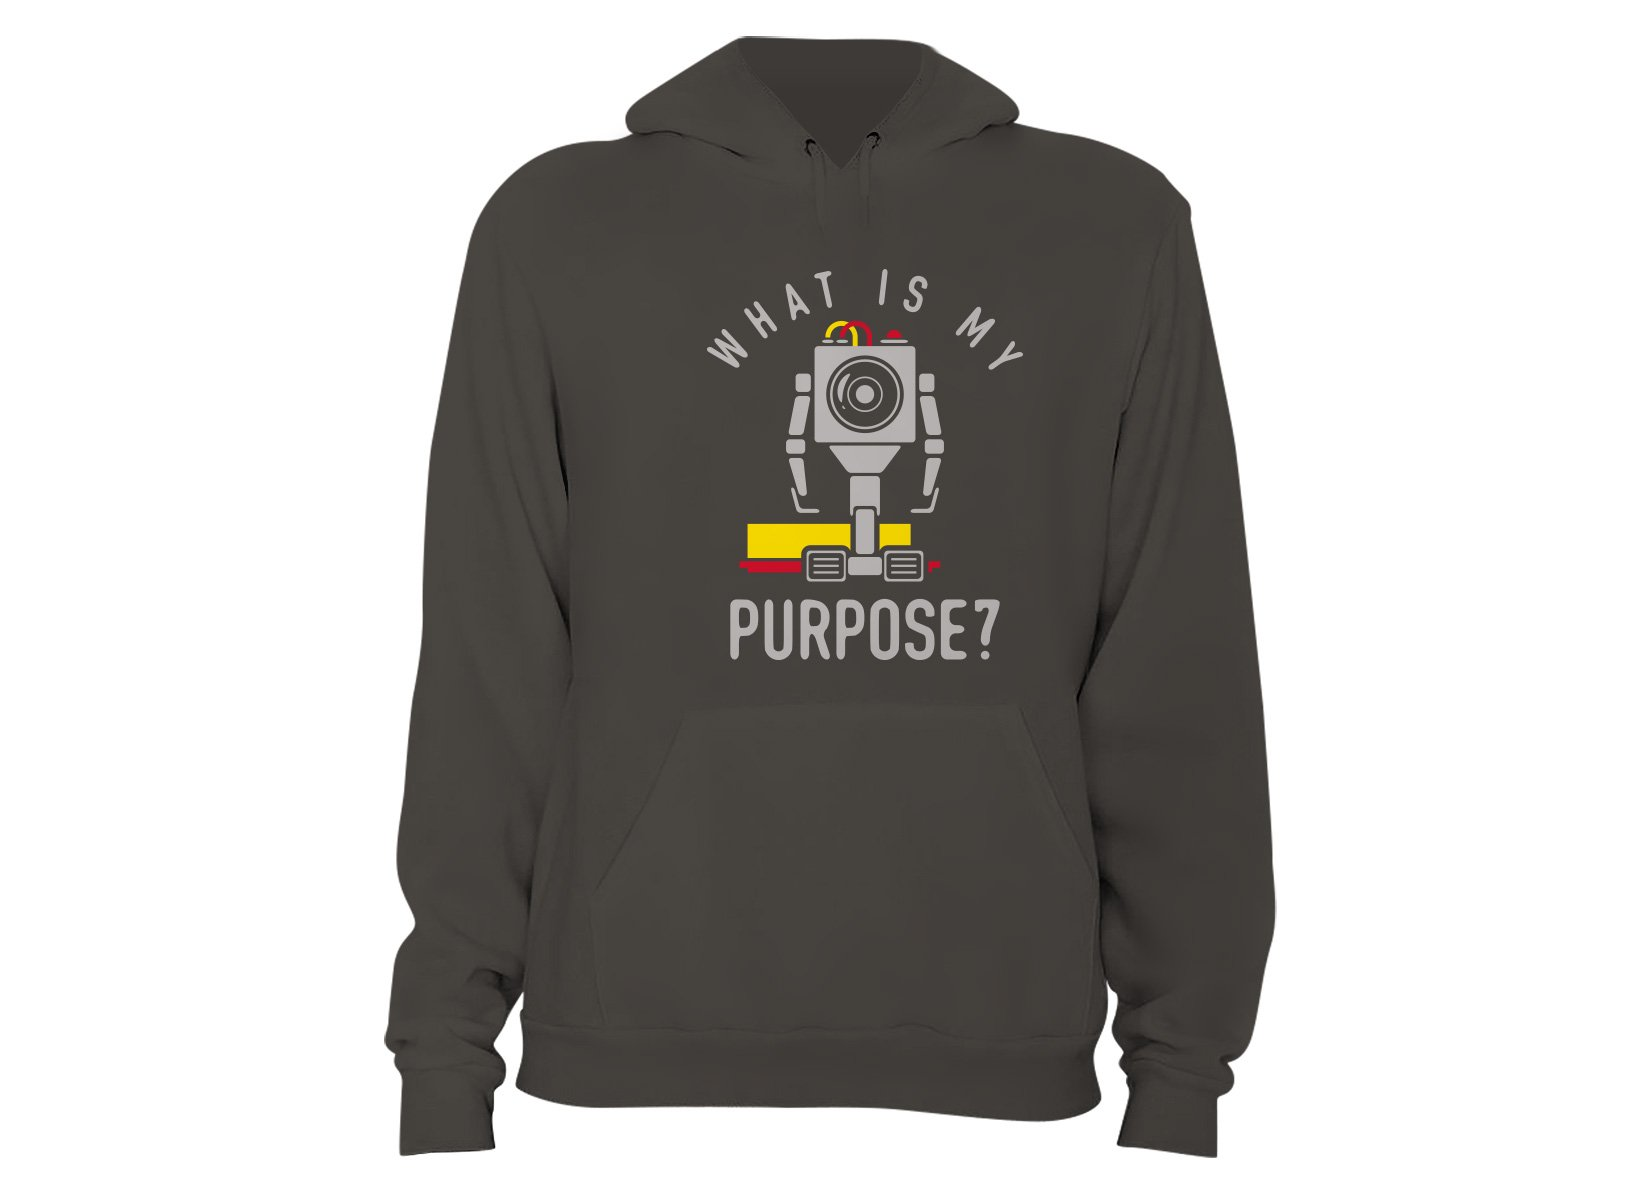 What Is My Purpose? on Hoodie